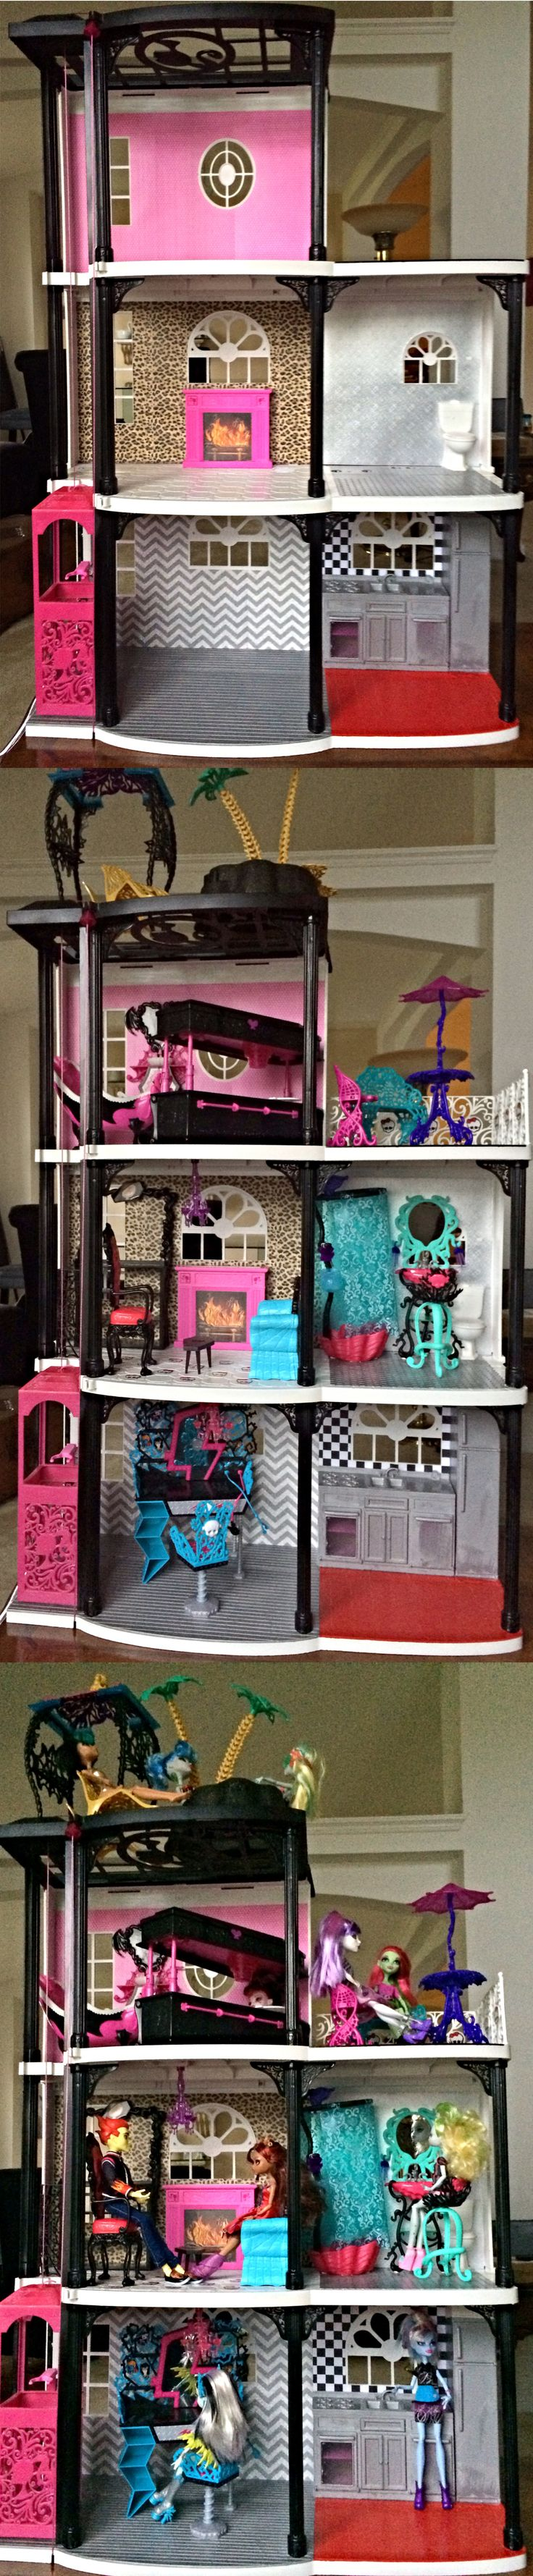 "My daughter's new Monster High House.  I found a used Barbie Dream Townhouse at a consignment store, repainted it and added some scrapbook ""wallpaper"".  We gave it to her for her birthday and she LOVES it!!!"